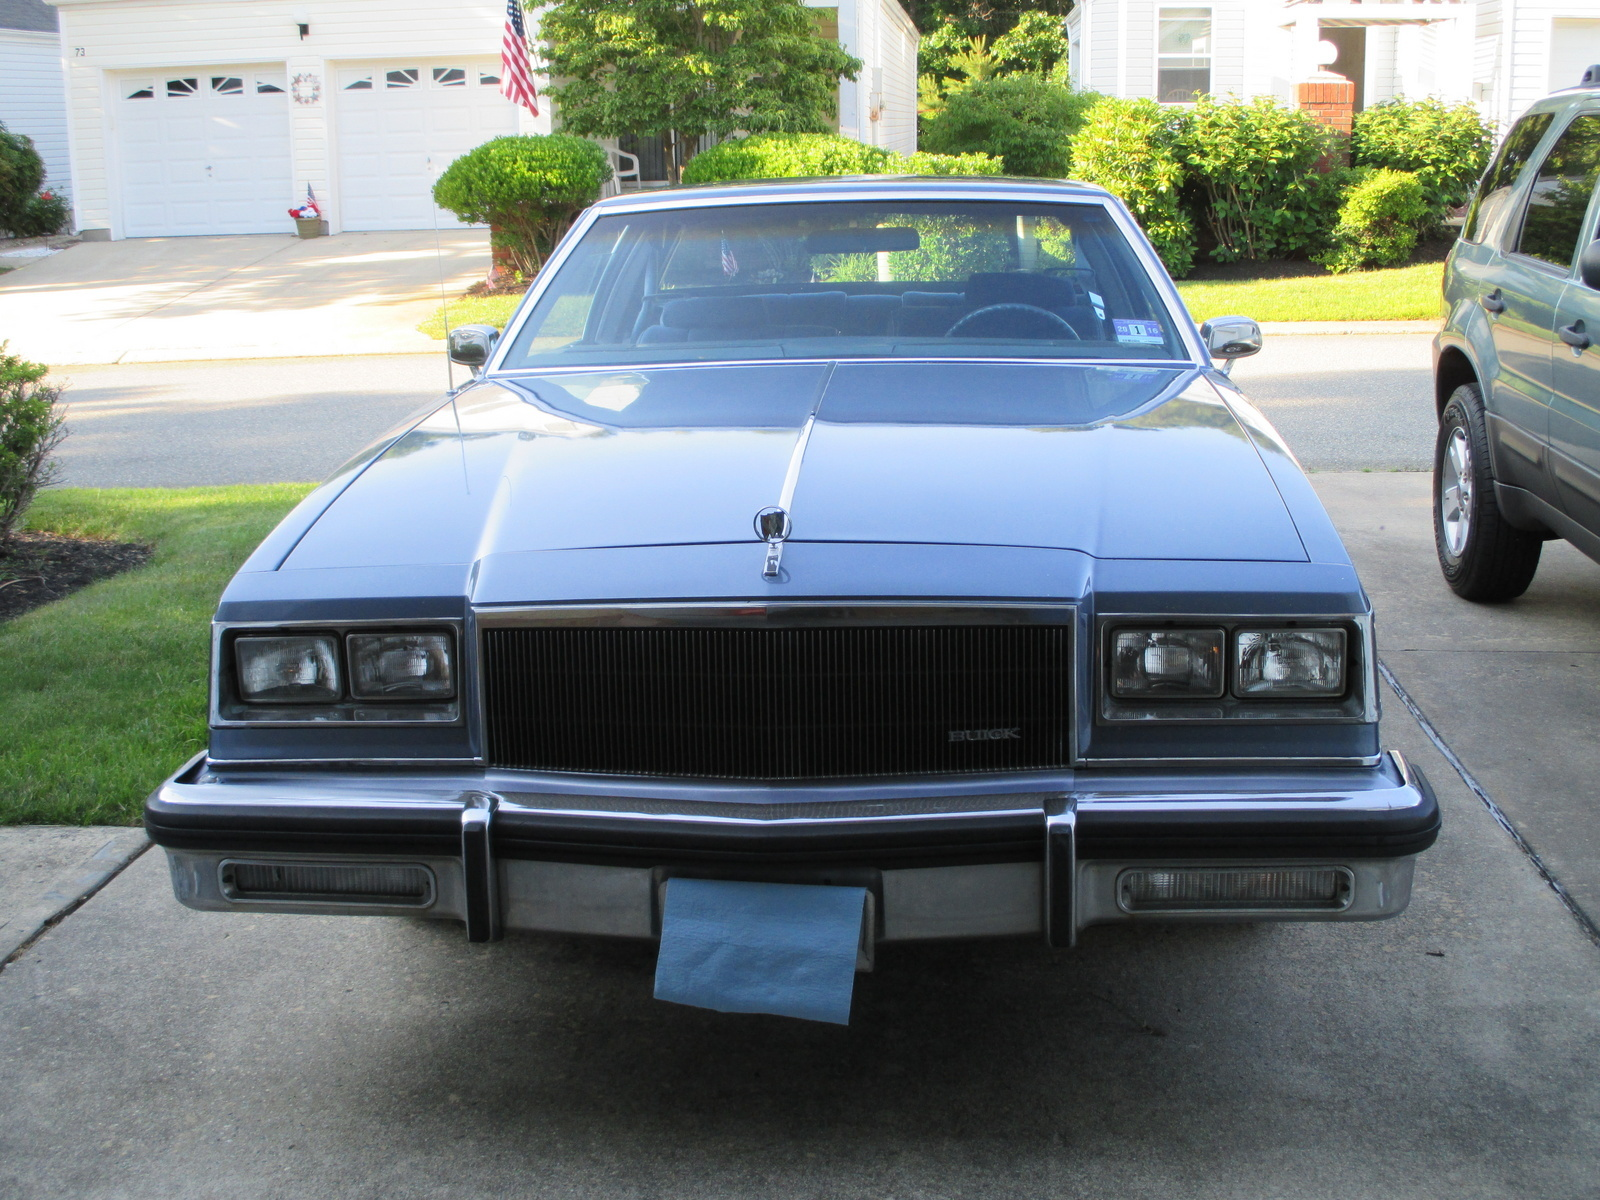 sale for west union in vehiclesearchresults oh vehicles equinox preowned photo vehicle buick chevrolet lesabre